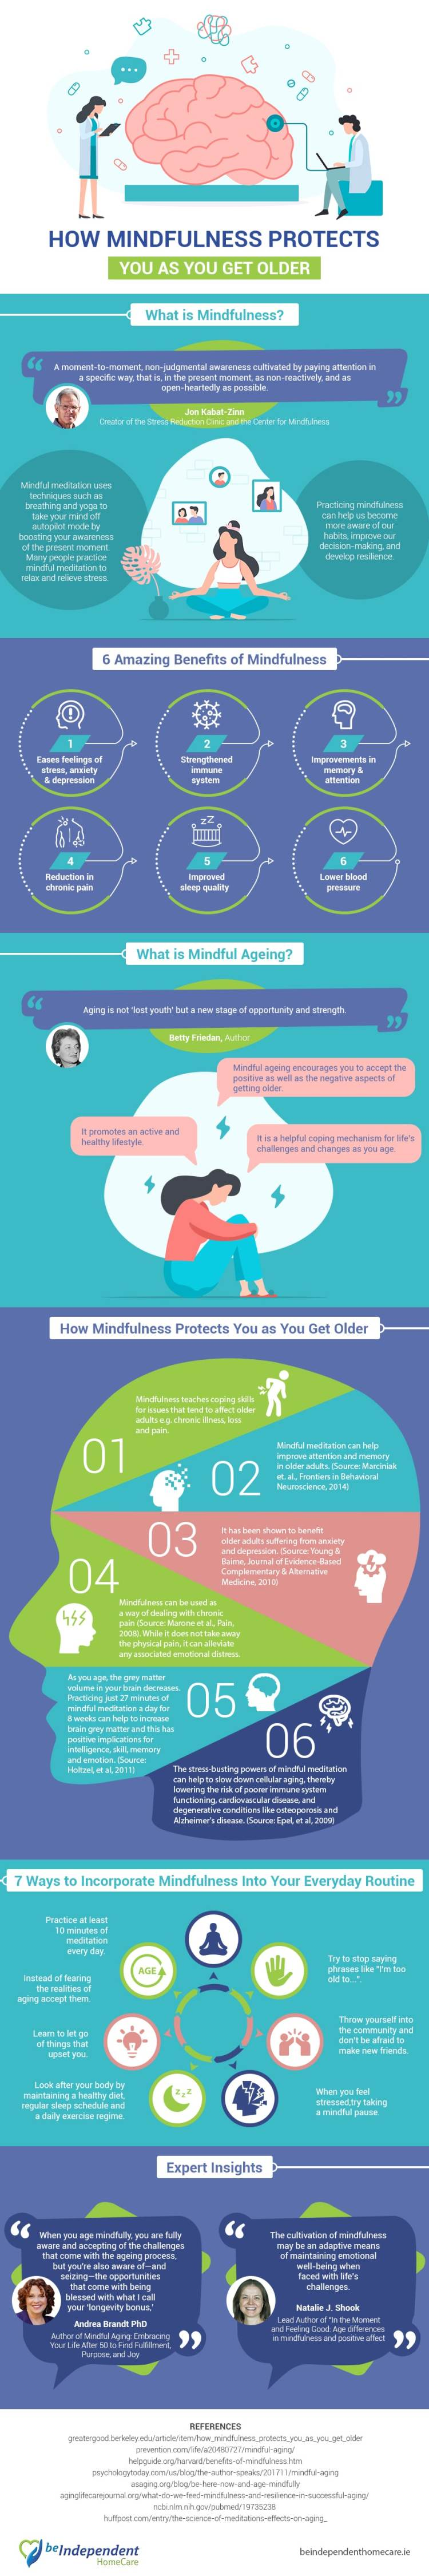 Mindful Ageing